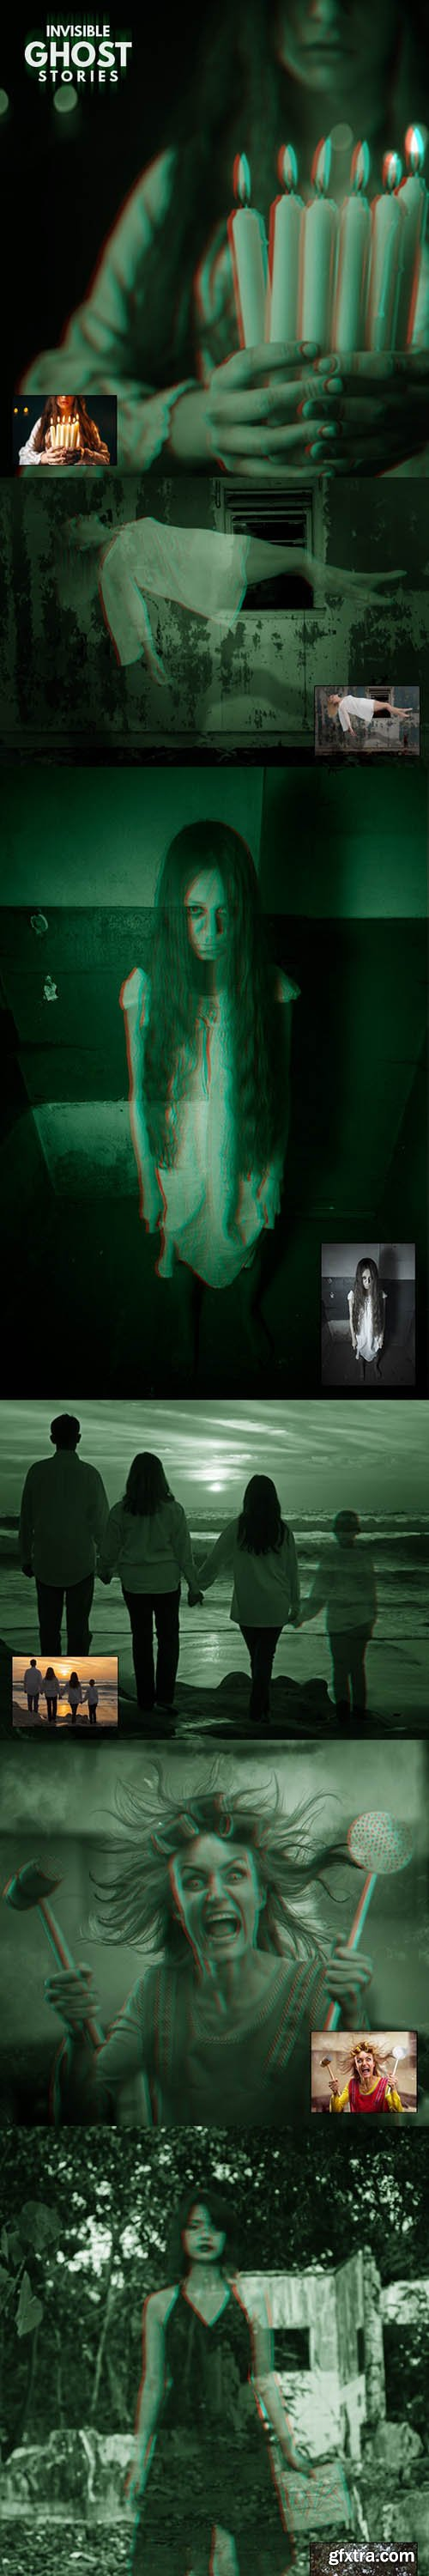 GraphicRiver - Invisible Ghost Stories - Photoshop Action 25771296